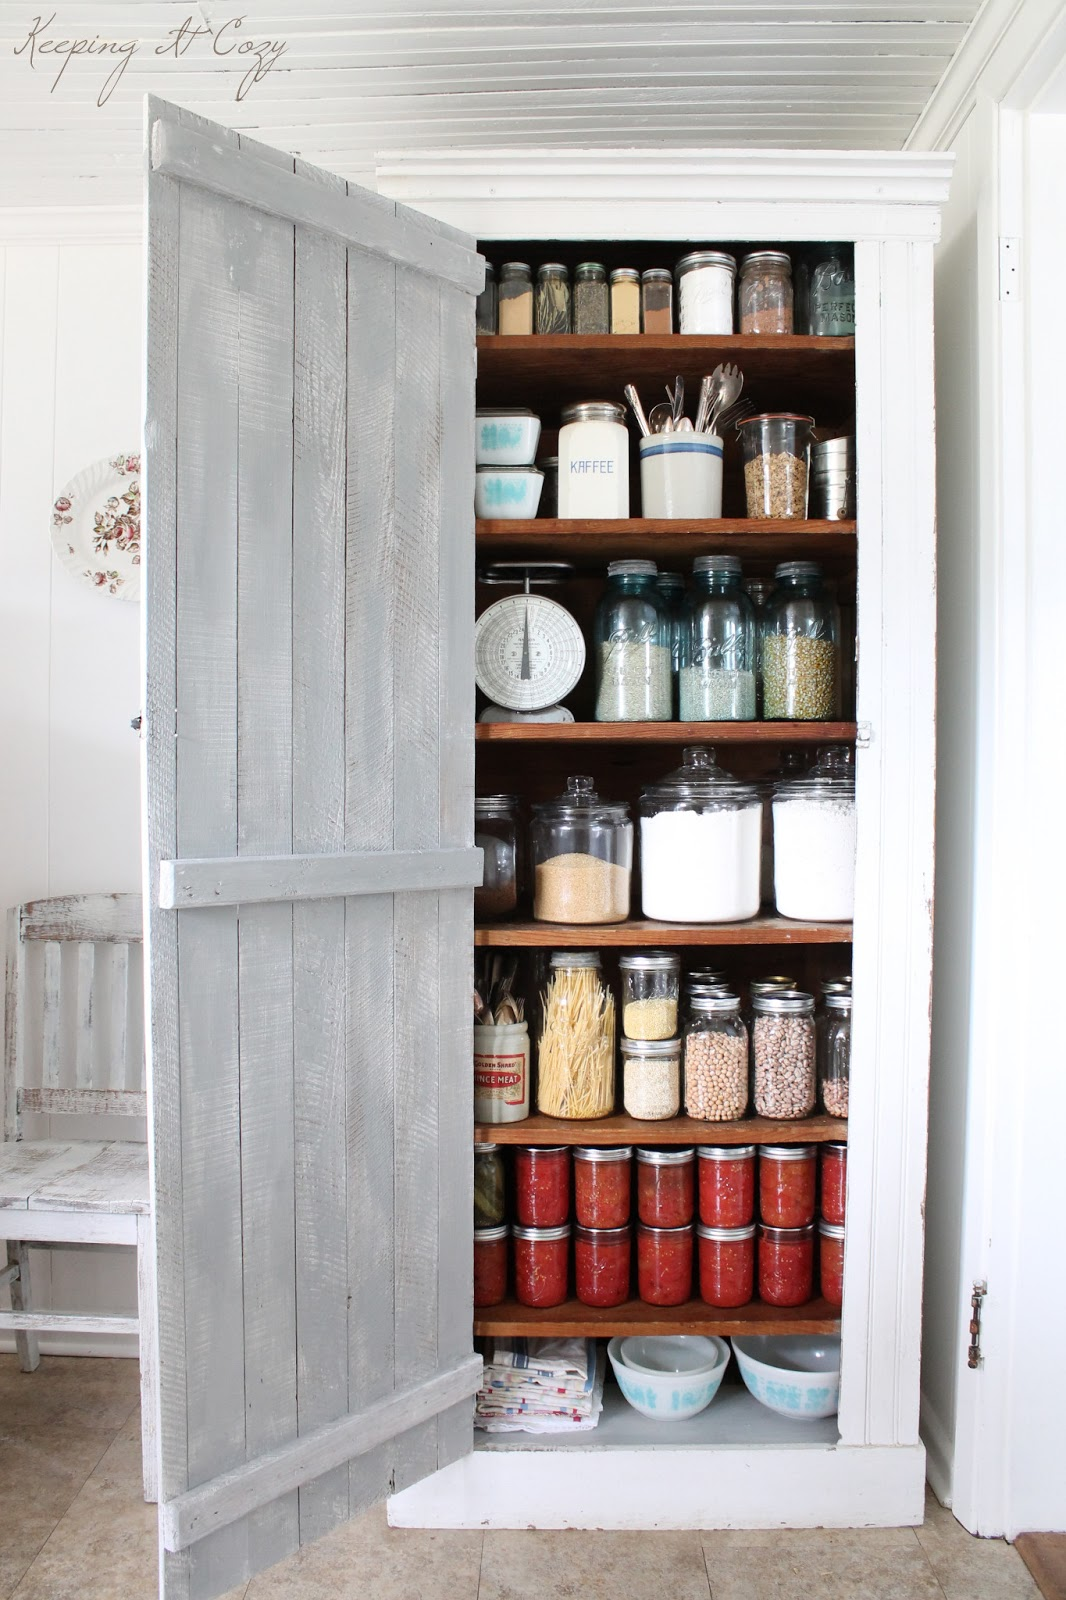 Keeping It Cozy Mini Makeovers At Country Living